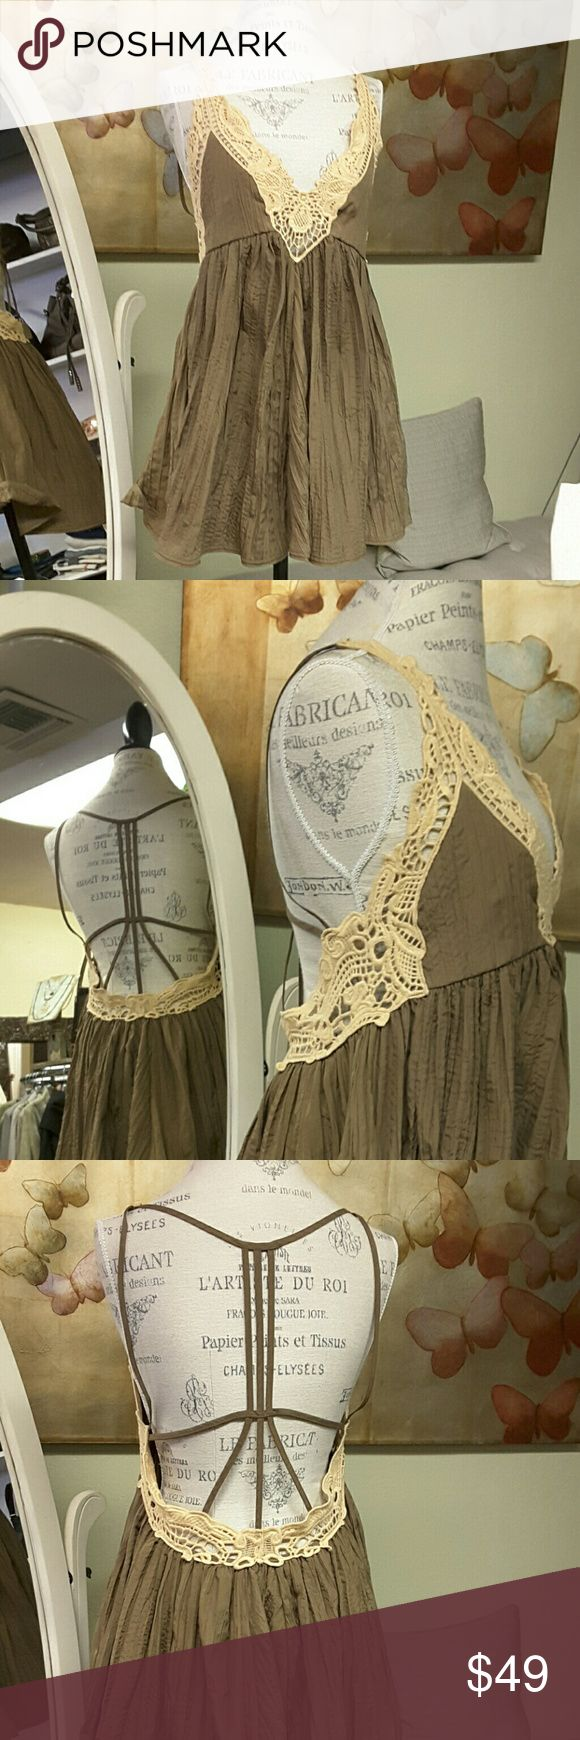 Free People top/tank/tunic Oversized top with strappy detail at back. Cream crochet and olive polyester fabric. Size xs, could be worn up to a size med approx. Gently worn. Free People Tops